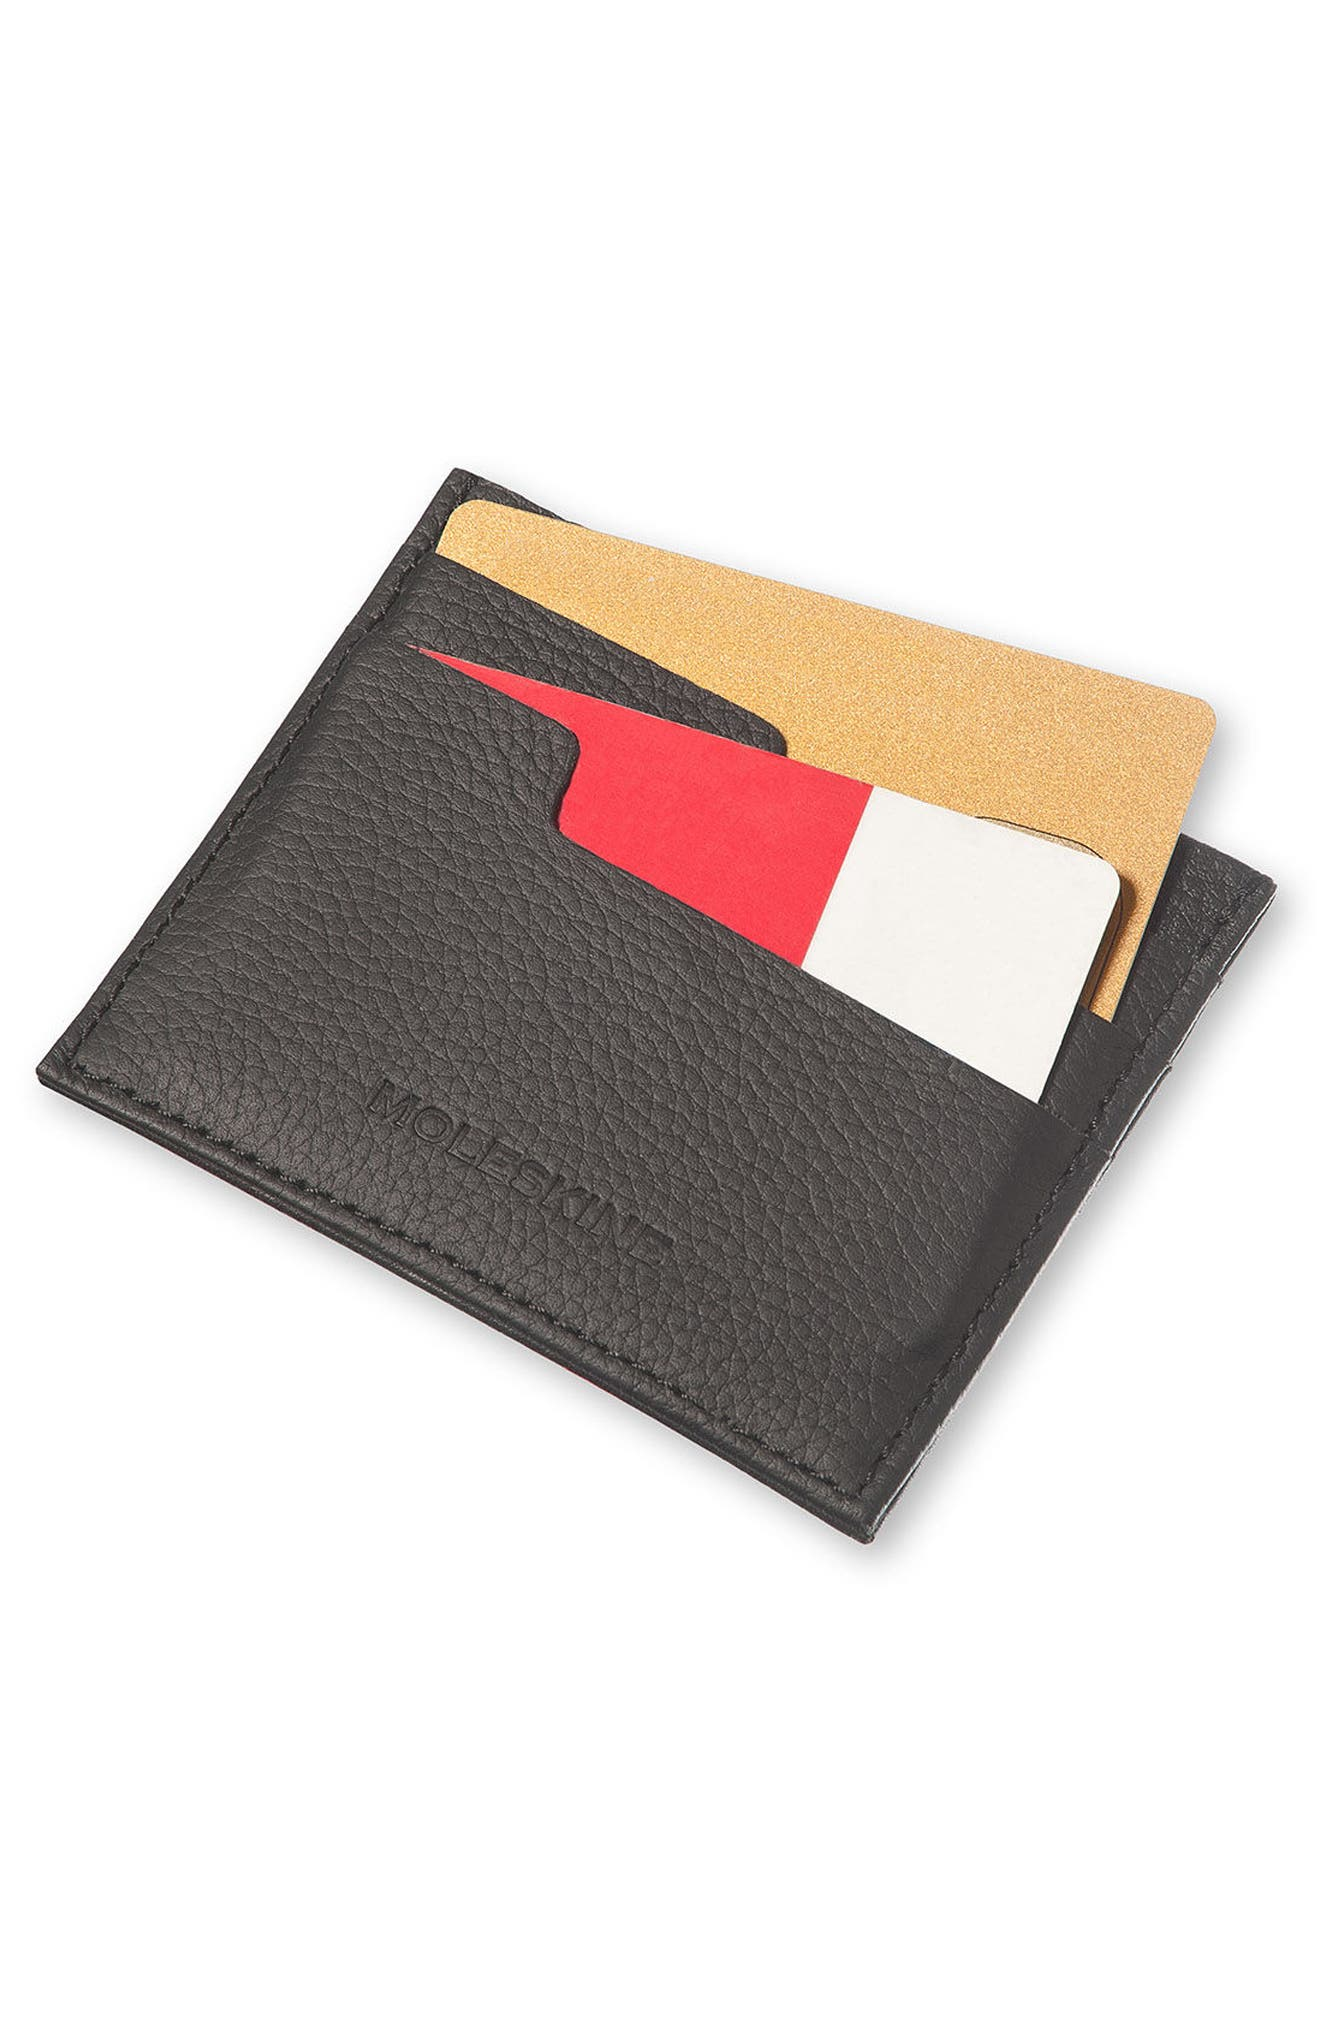 Moleskin Lineage Leather Card Case,                             Alternate thumbnail 2, color,                             Black